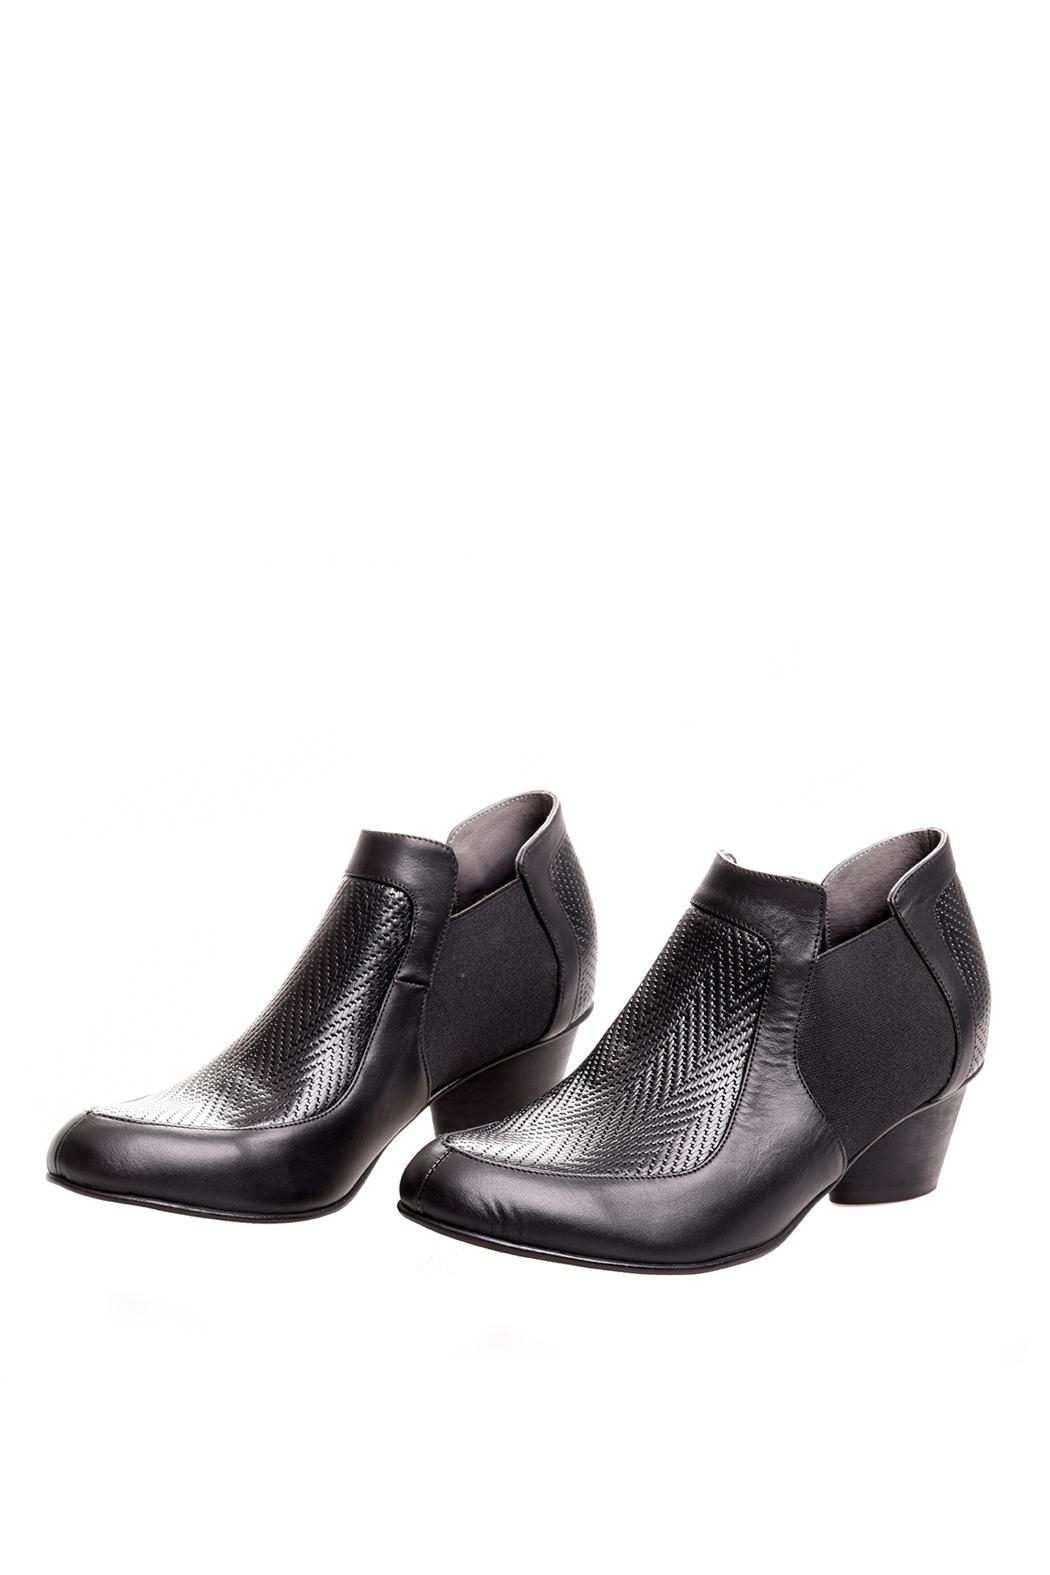 Bottega Bash Black Leather Booties - Main Image